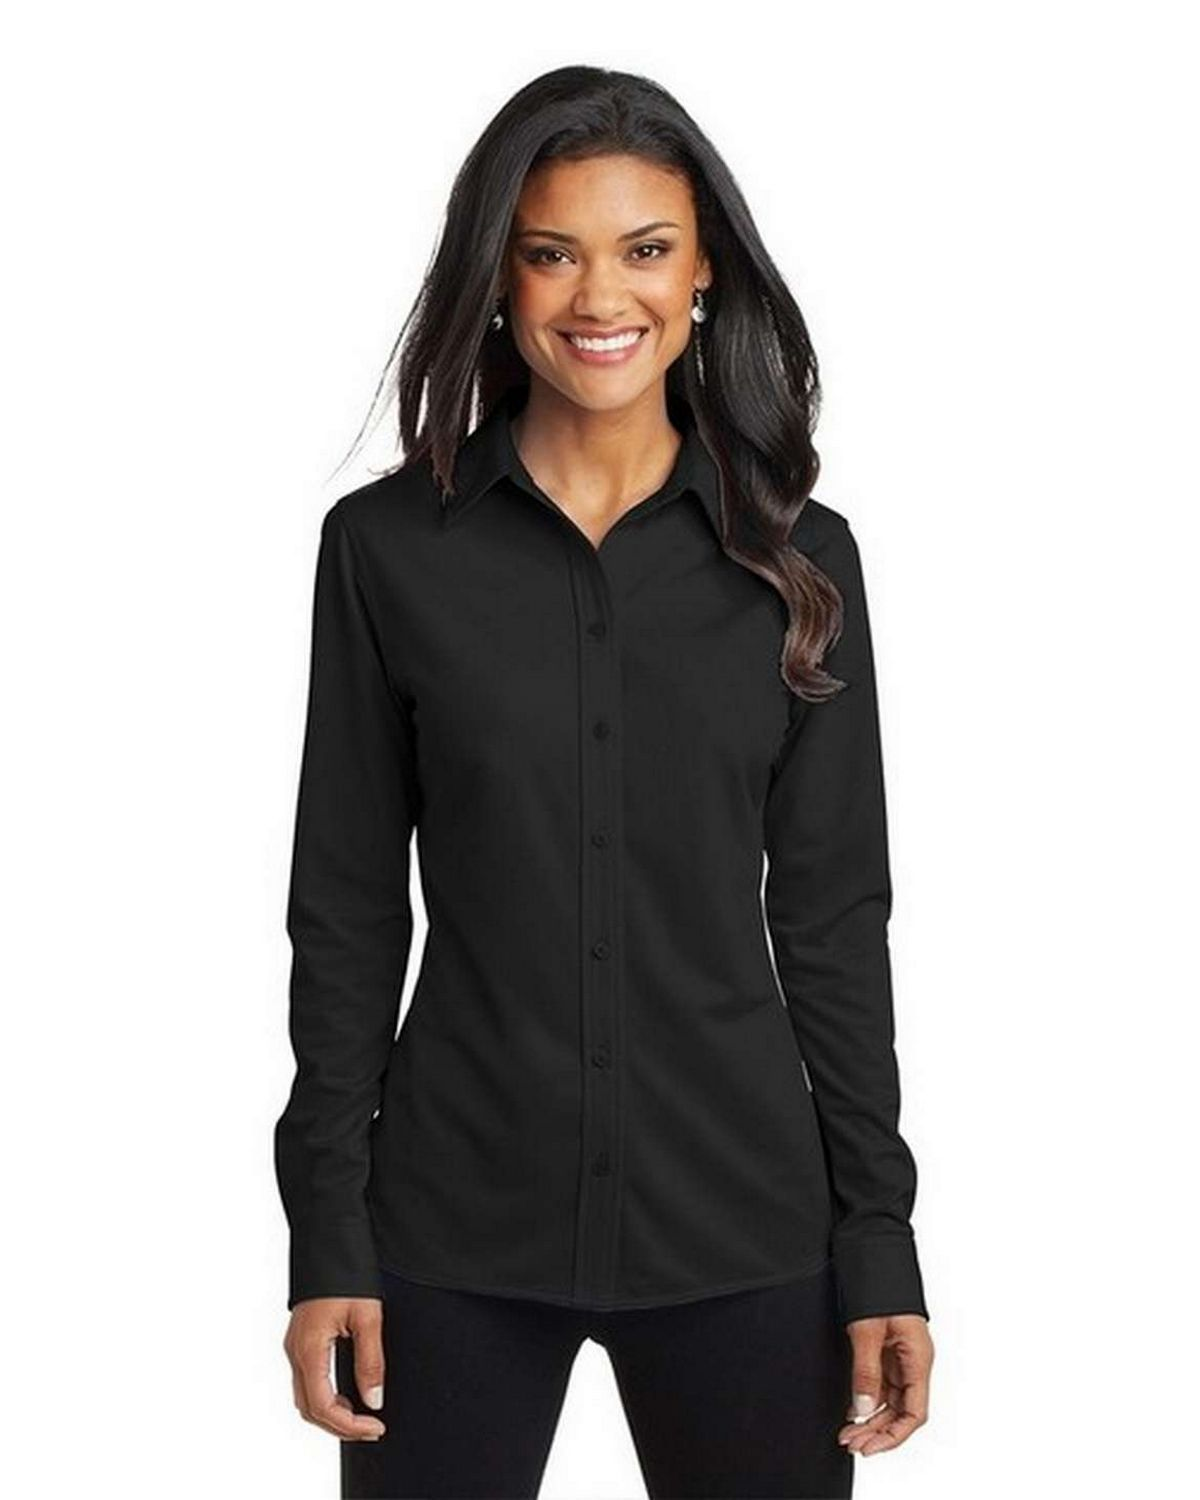 Port Authority L570 Ladies Dimension Knit Dress Shirt